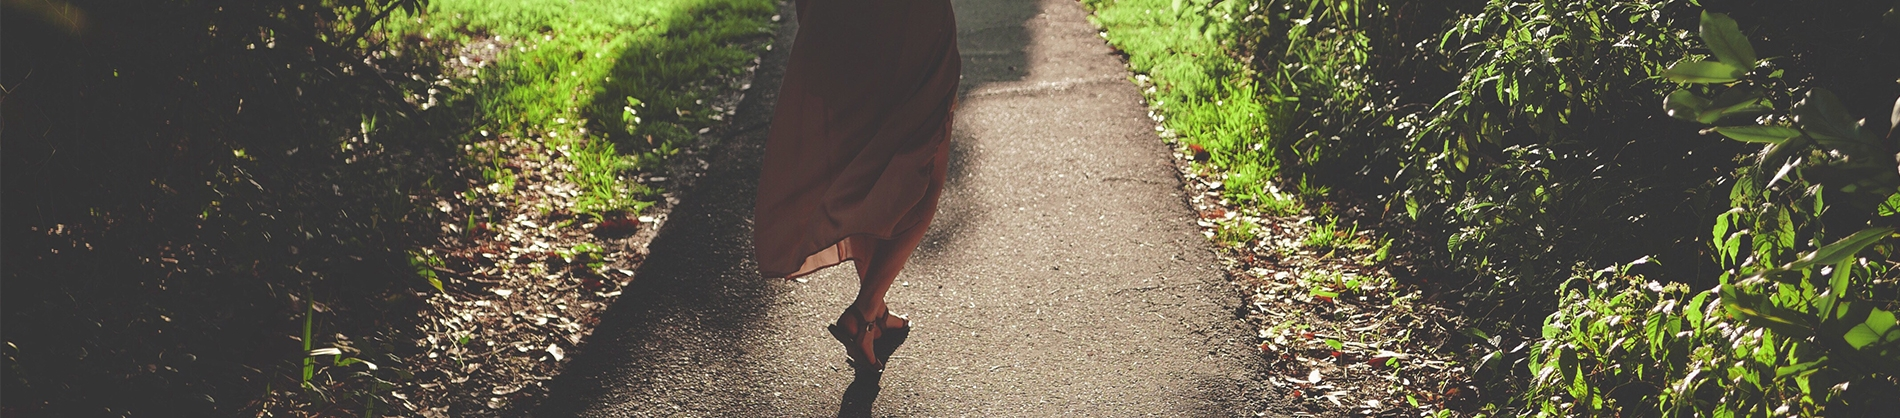 A women walking down a path with grass either side